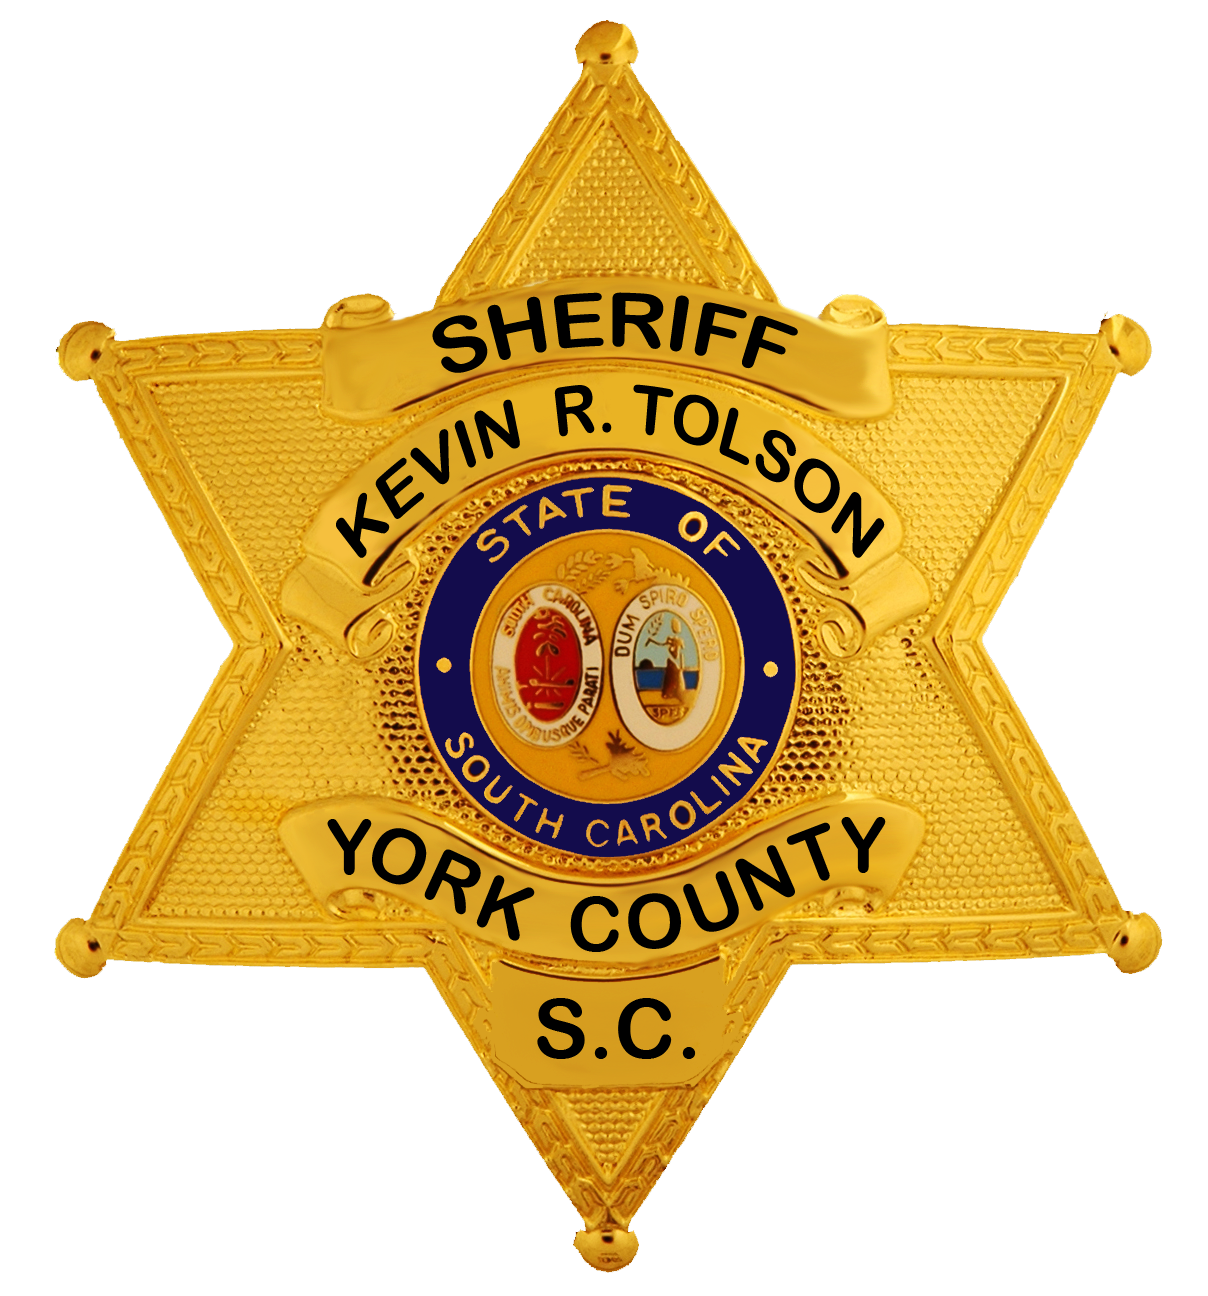 York County Sheriff's Office